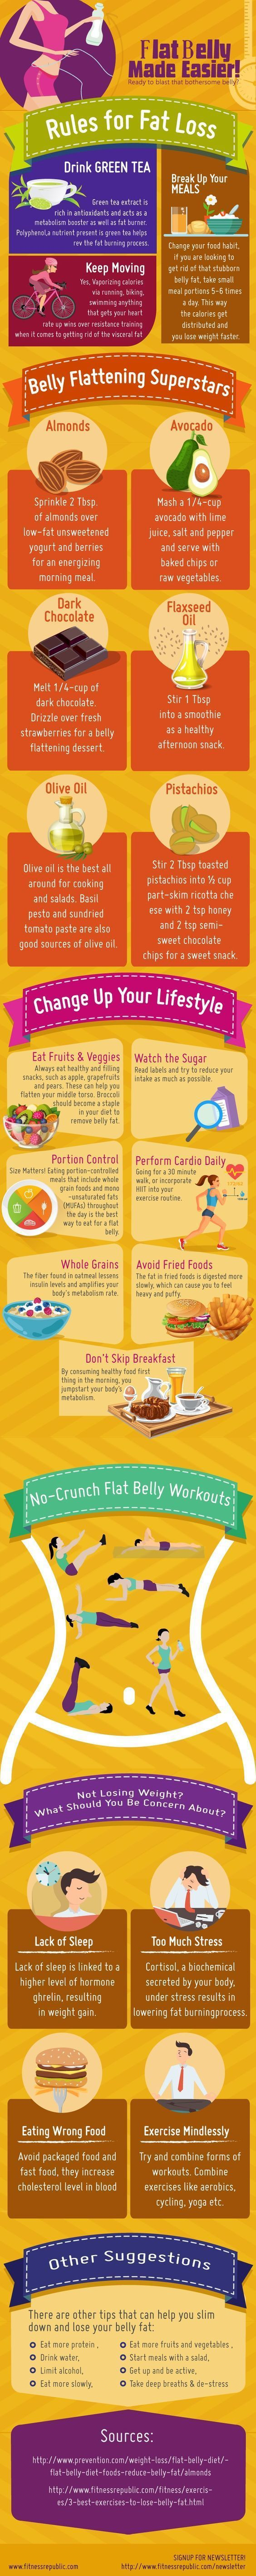 4 rules for fat loss